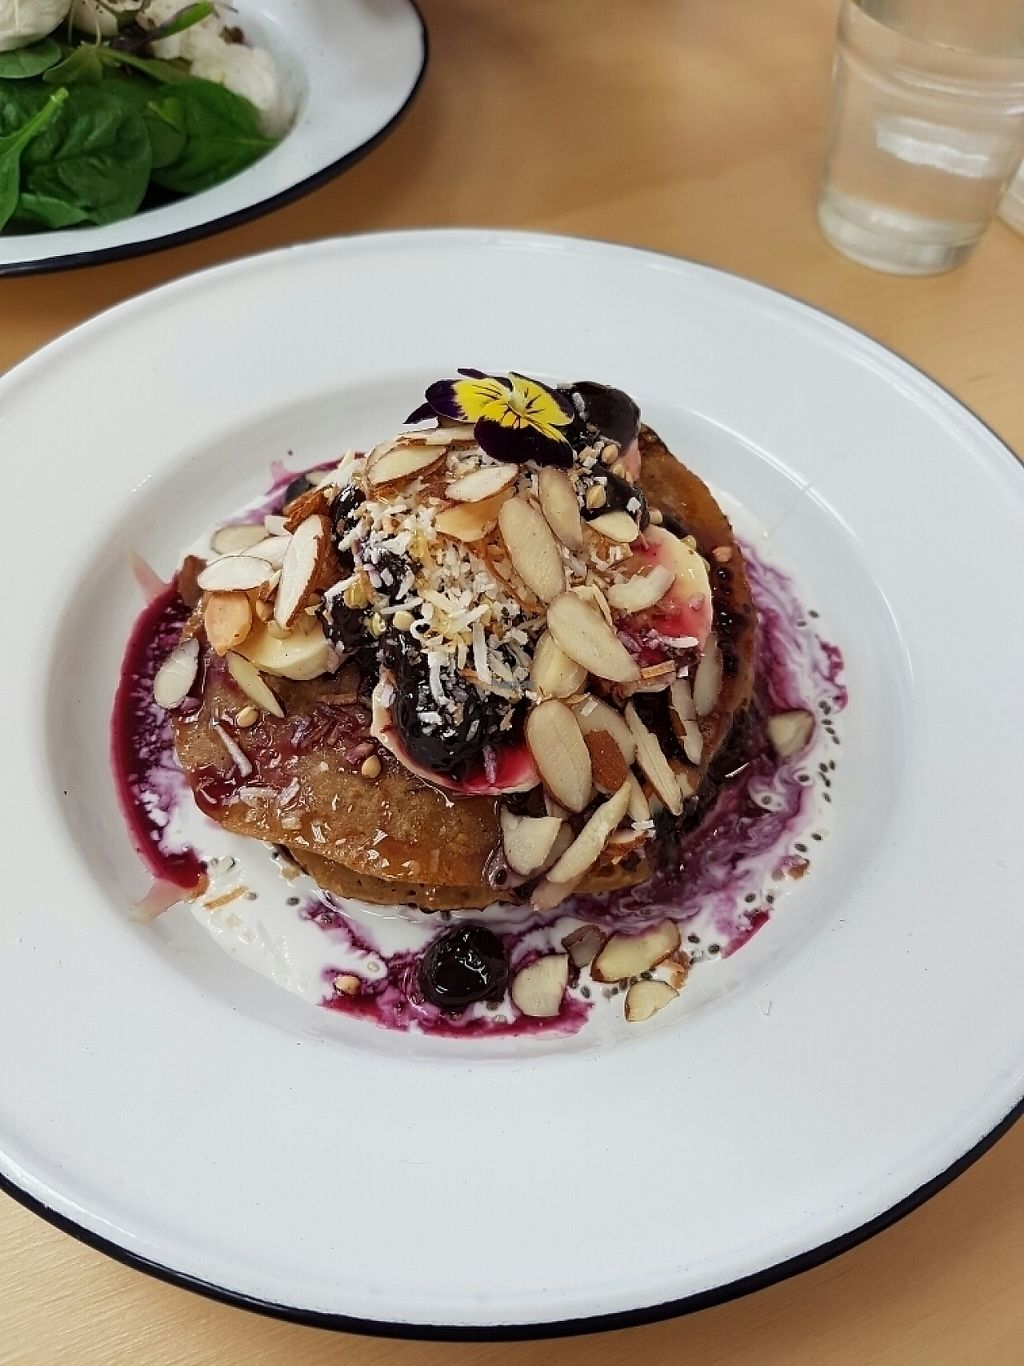 """Photo of Wild One Wholefoods Eatery   by <a href=""""/members/profile/ChellyStokman"""">ChellyStokman</a> <br/>Vegan Blueberry Pancakes <br/> January 15, 2017  - <a href='/contact/abuse/image/78133/212254'>Report</a>"""